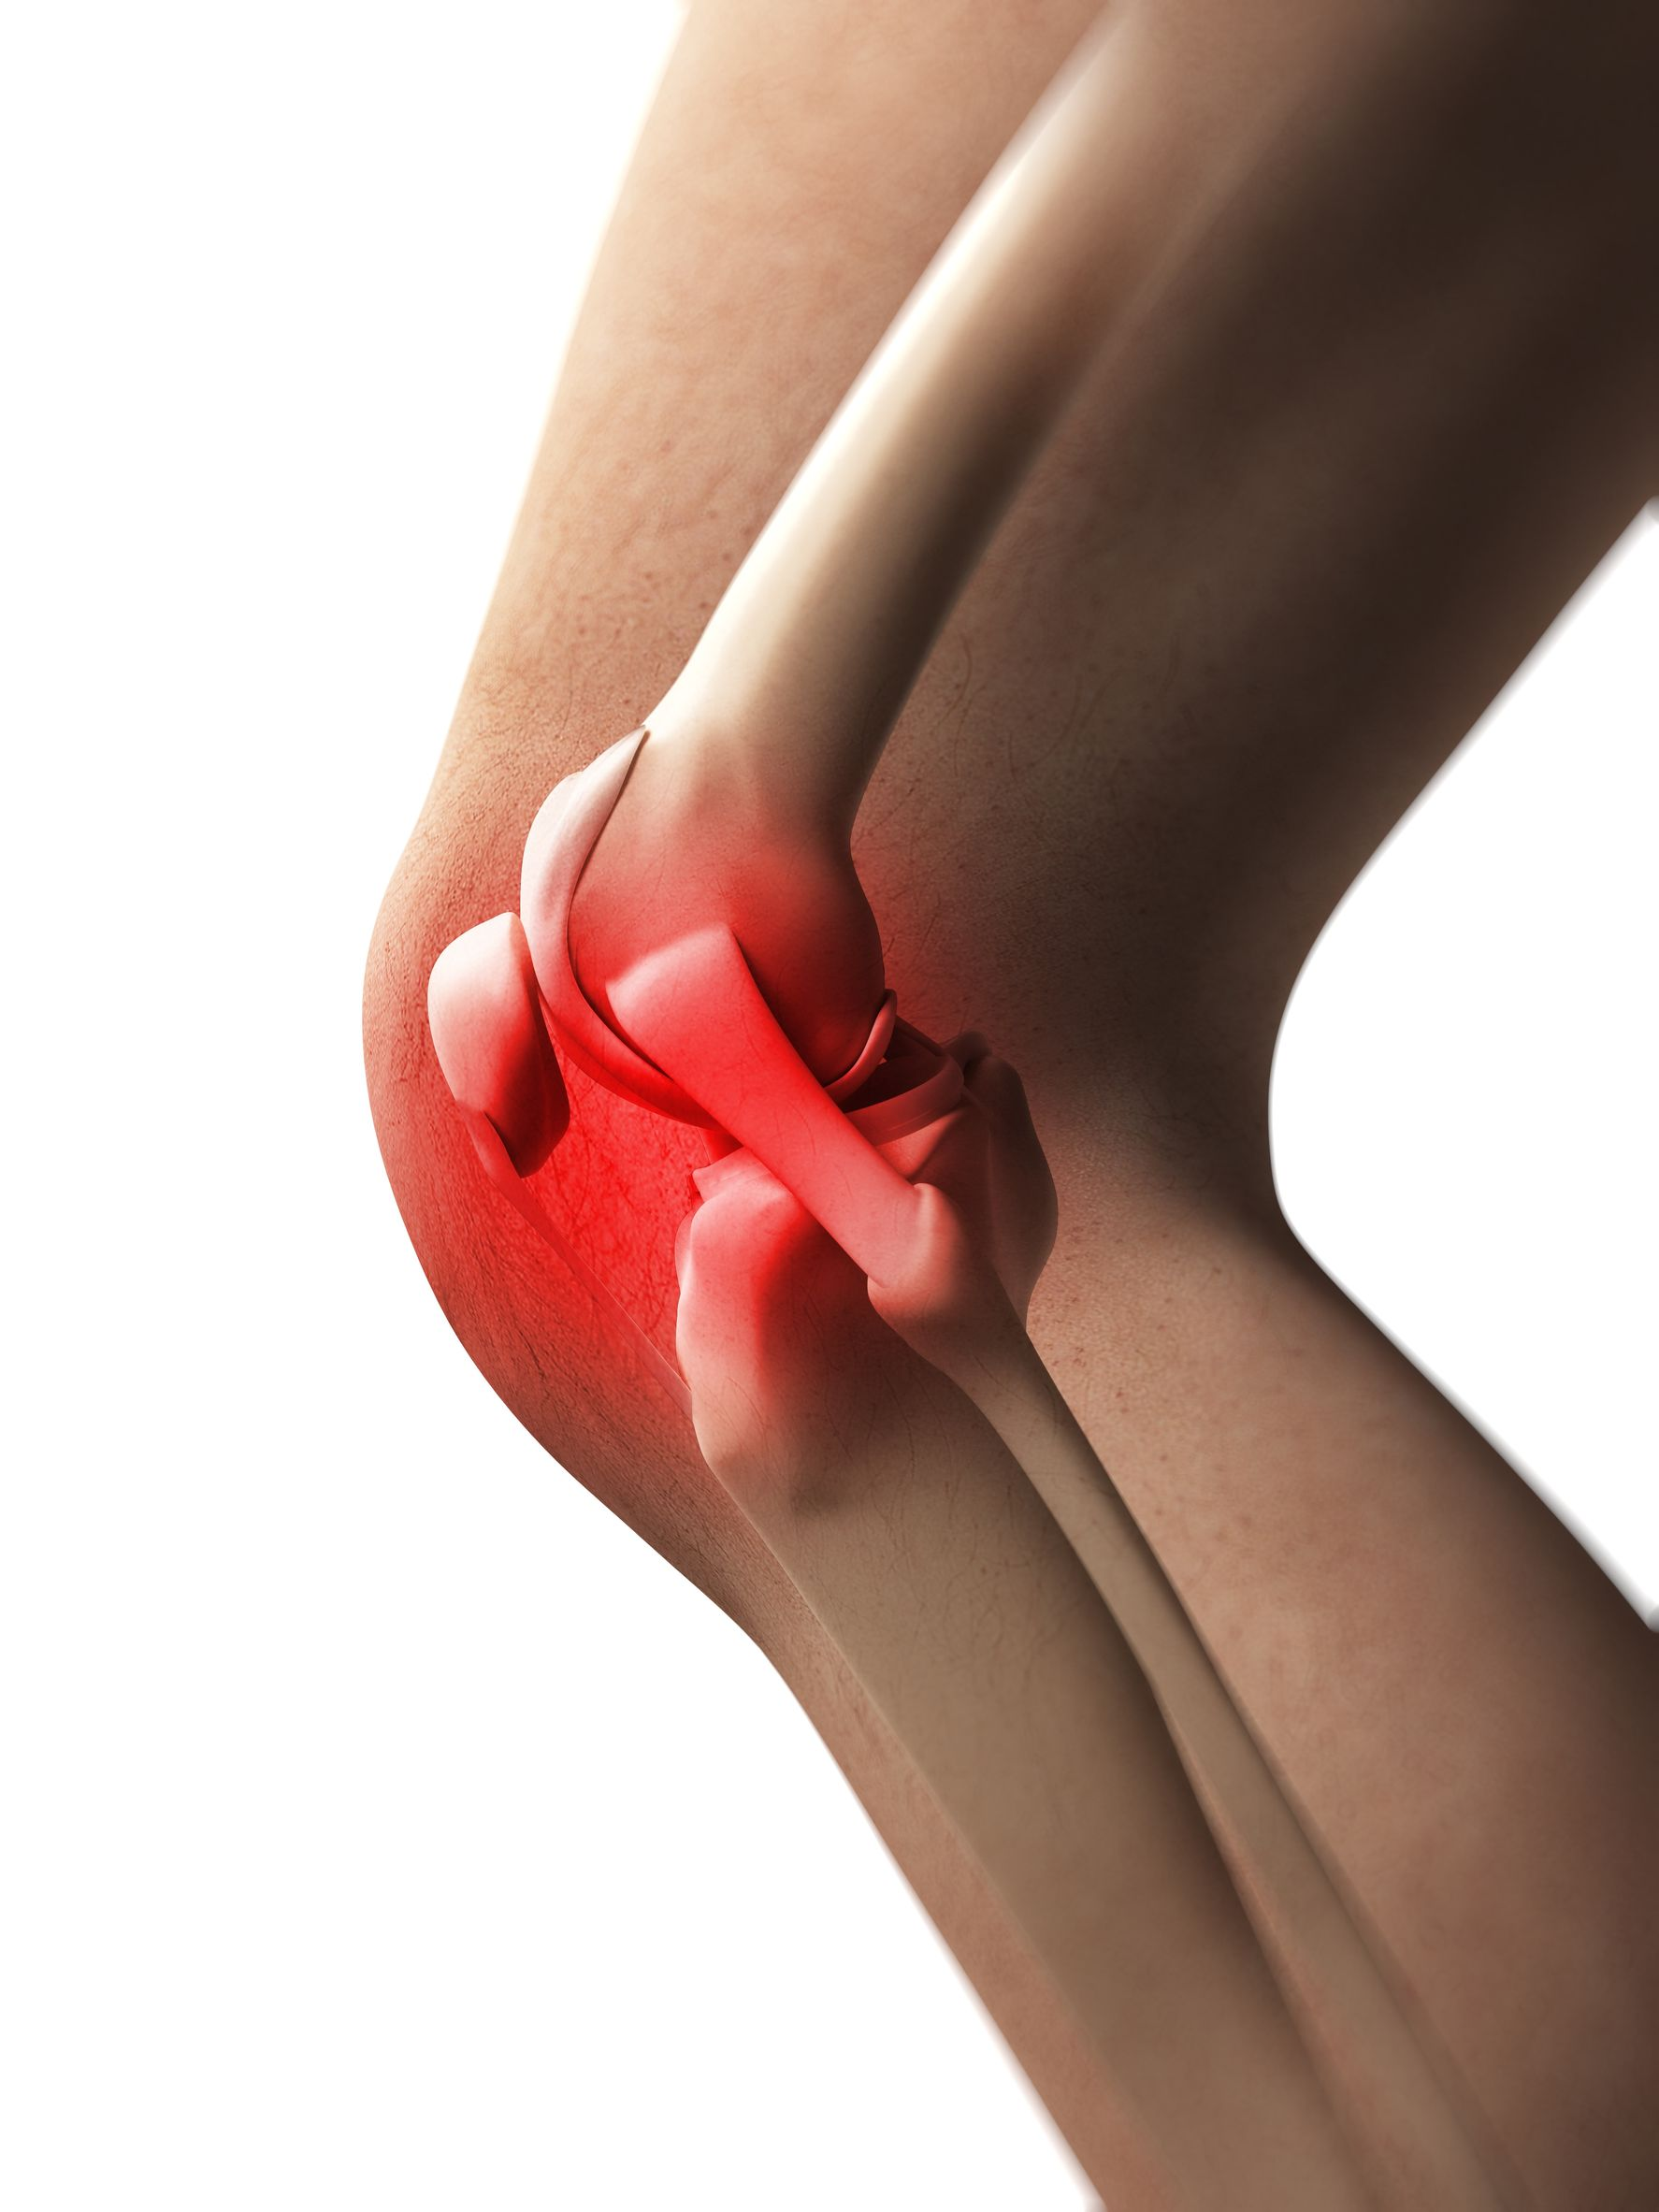 Pain management in lupus lupus uk 90 to 95 of people with lupus will experience muscle andor joint pain arthralgias are pains in the joints and myalgias are pains in the muscles solutioingenieria Choice Image